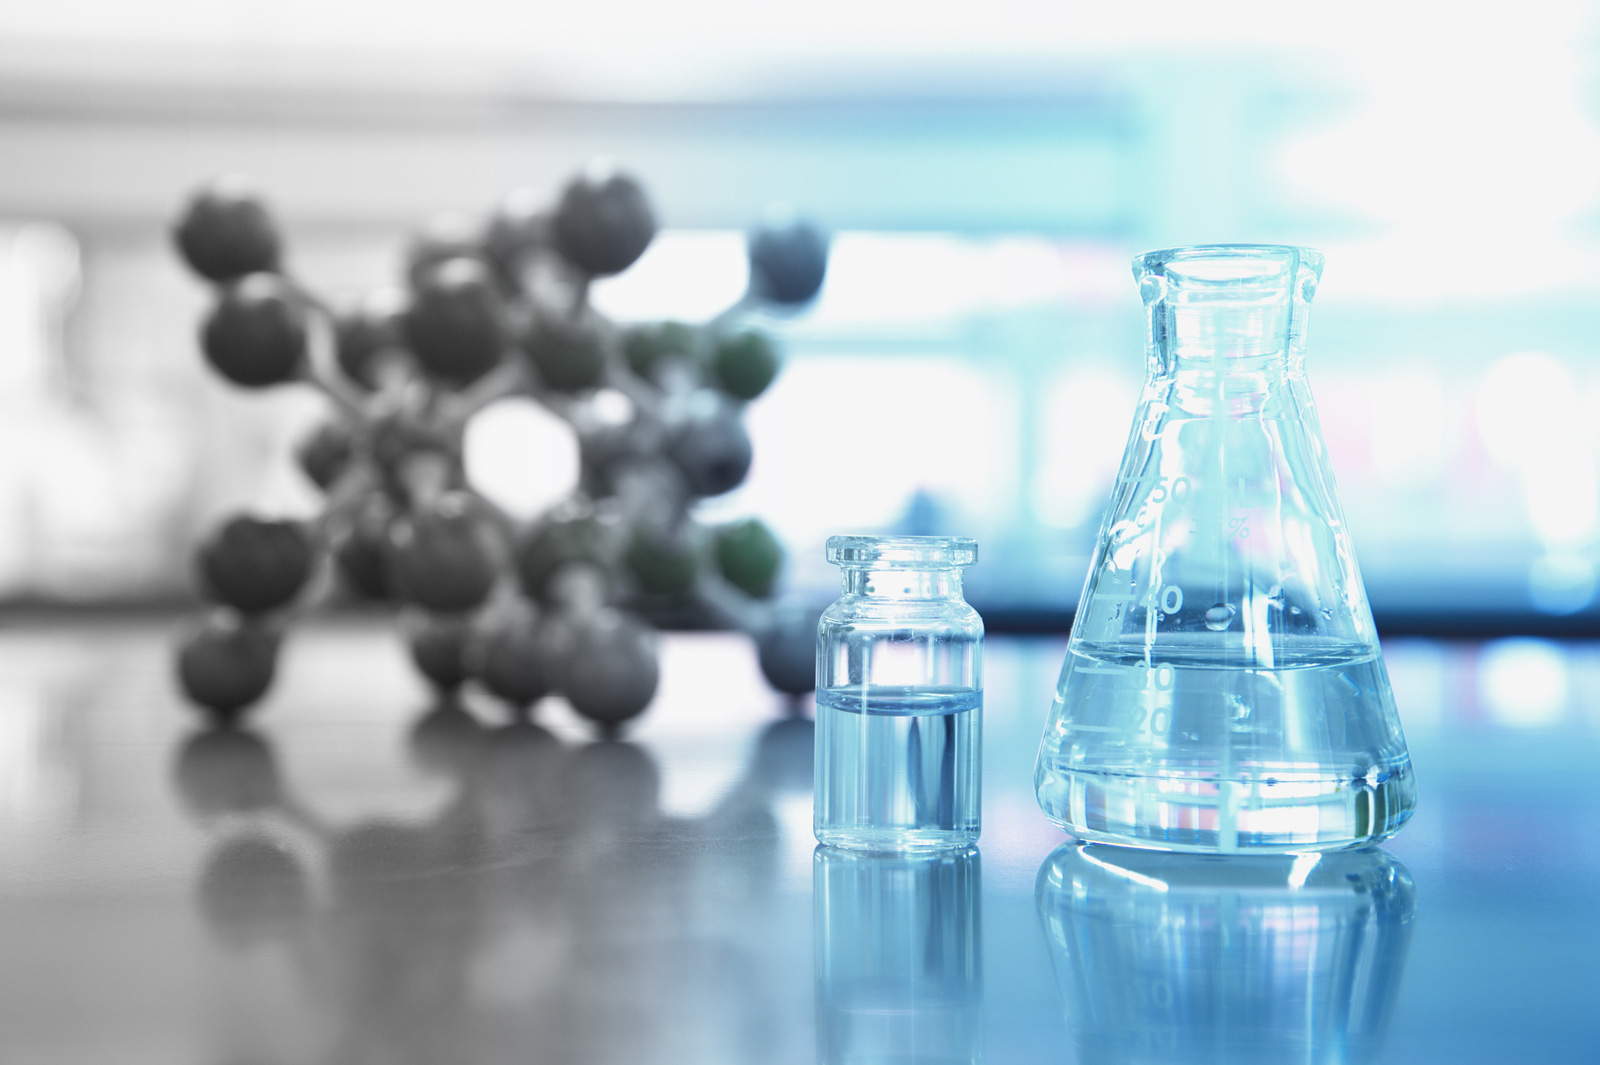 Tert-butanol  Market Insights, Trends & Growth Outlook